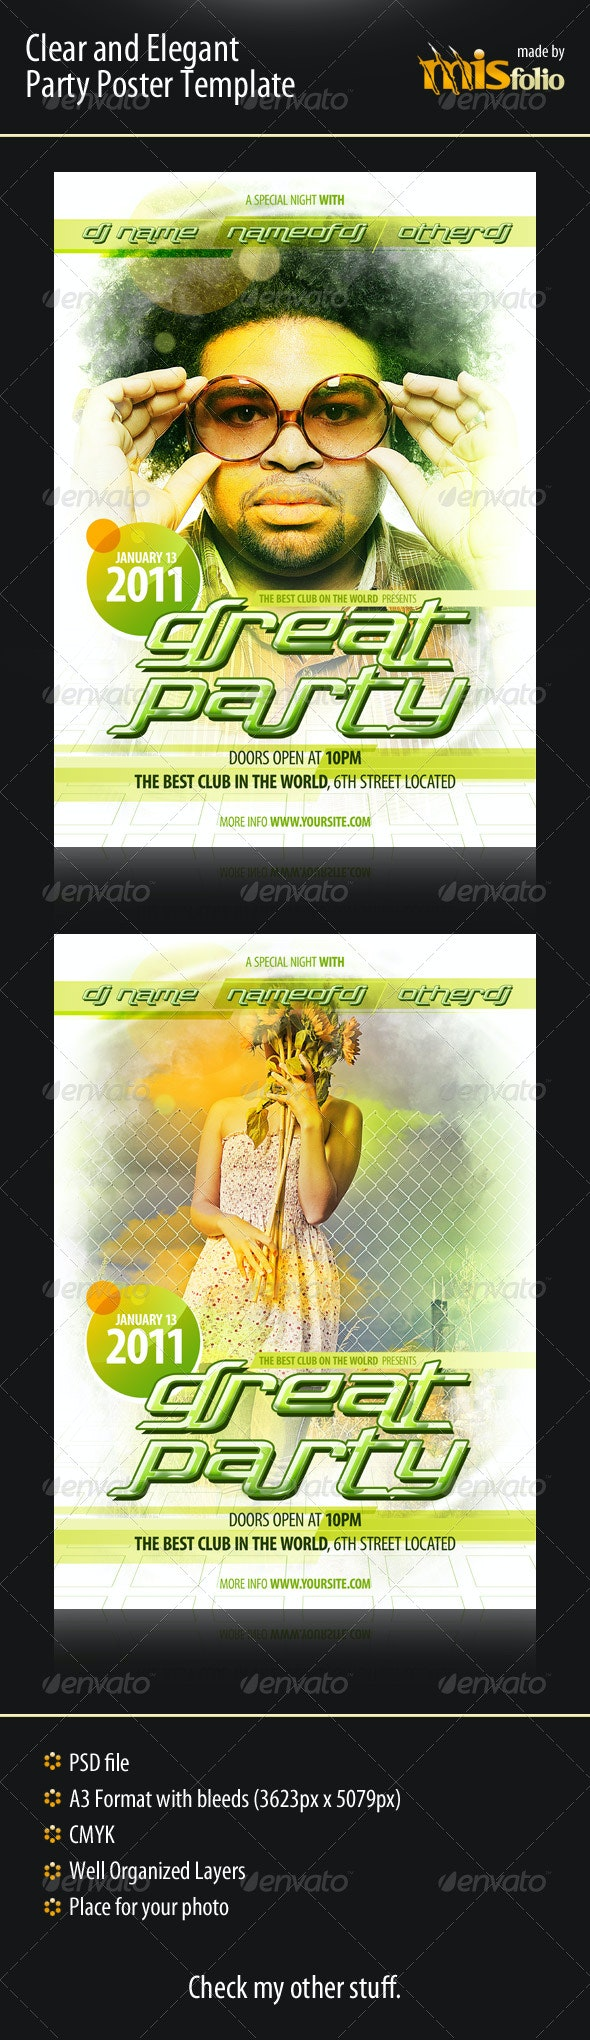 Clear and Elegant Party Poster Template - Clubs & Parties Events